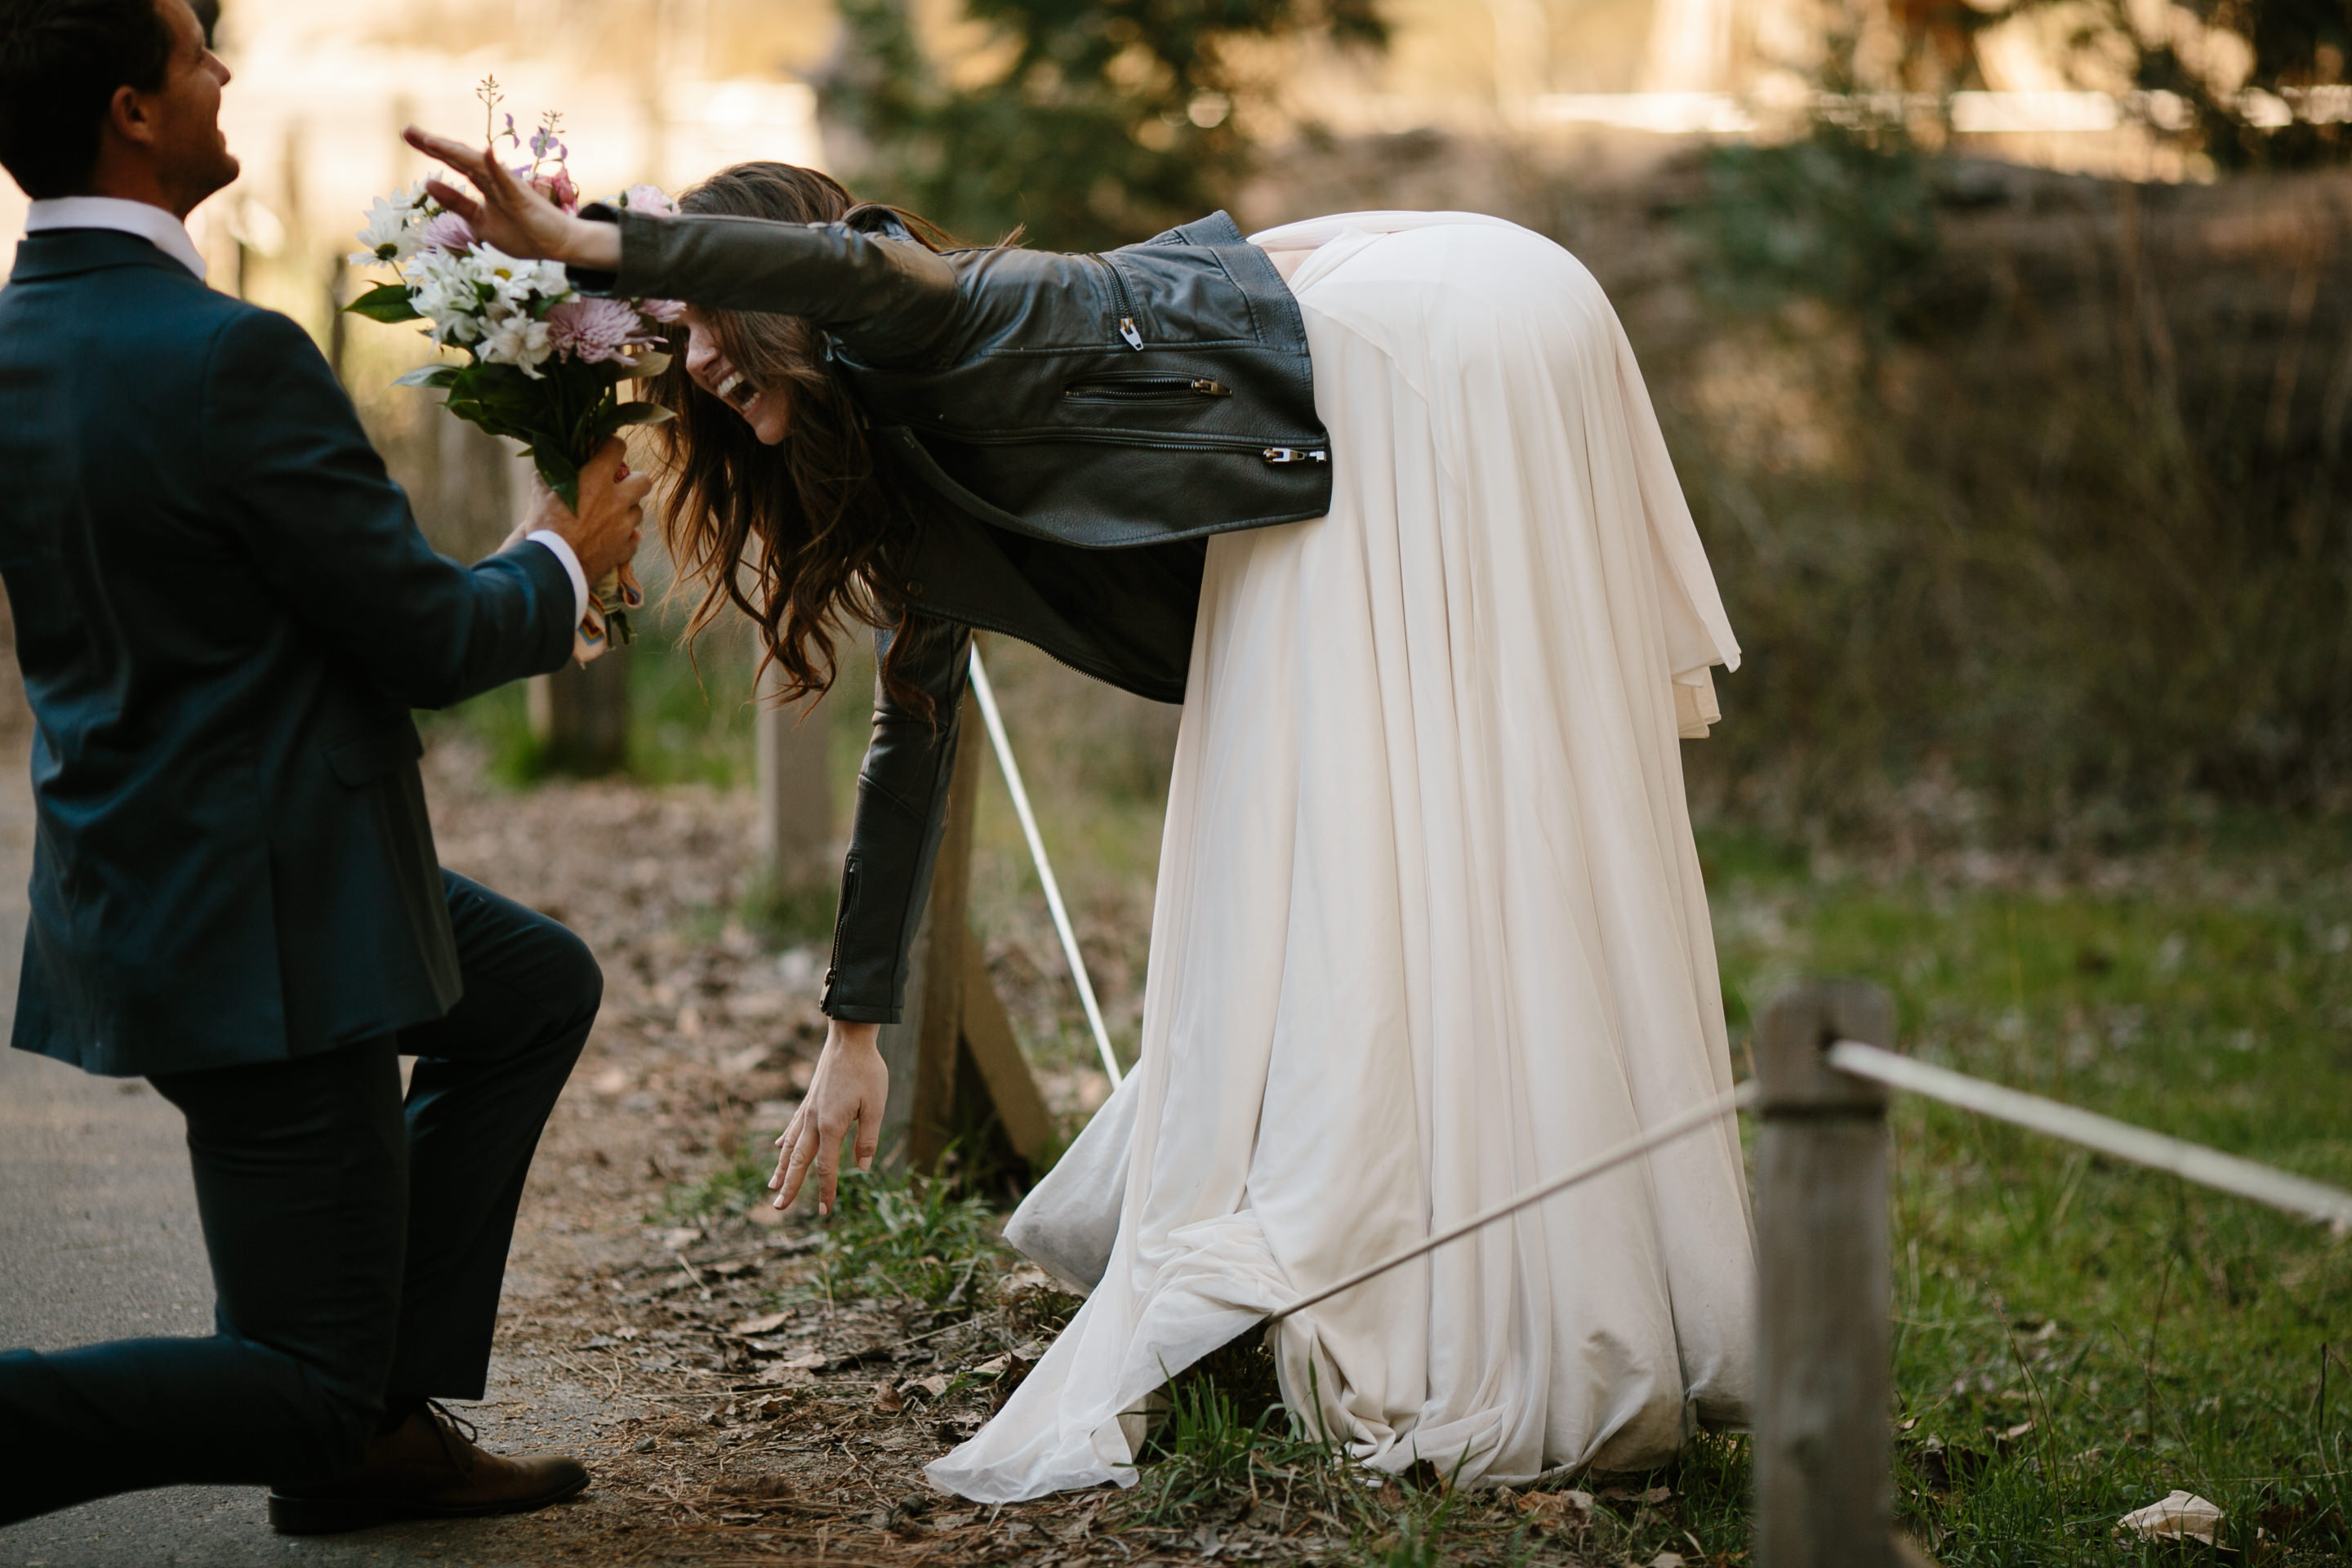 Flowers in hand, Ryan kneels before his bride while she slack lines in her wedding dress at Yosemite